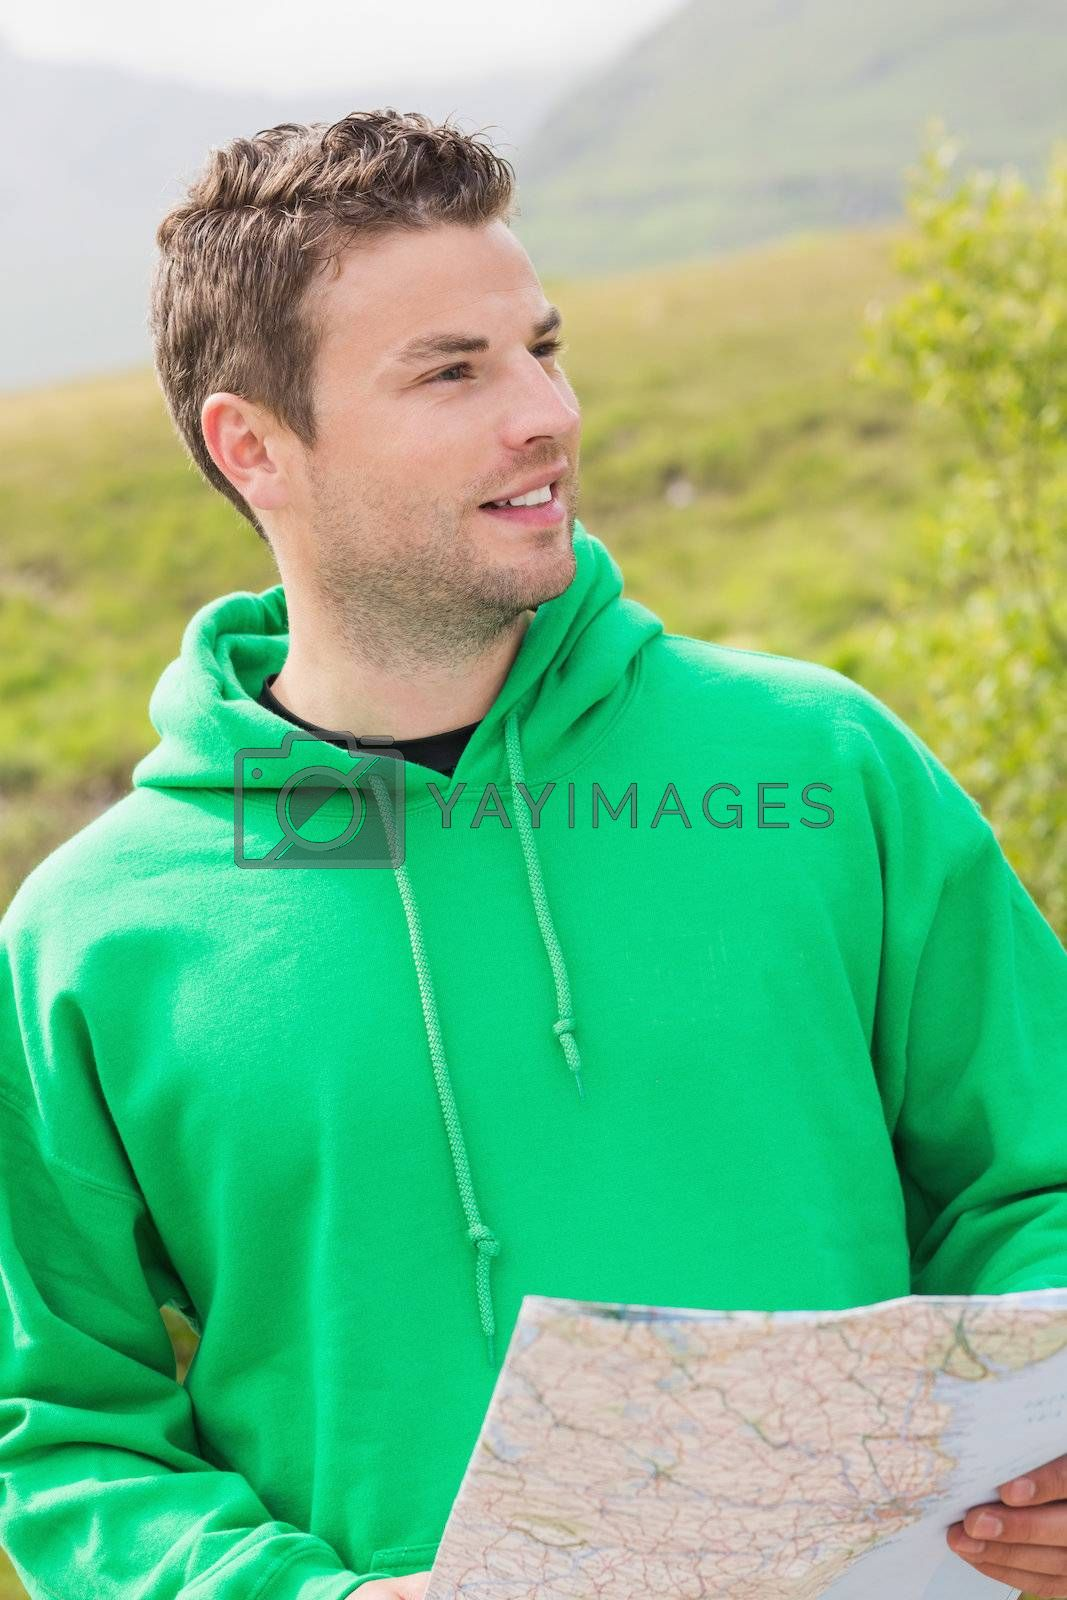 Athletic man holding a map and looking ahead by Wavebreakmedia